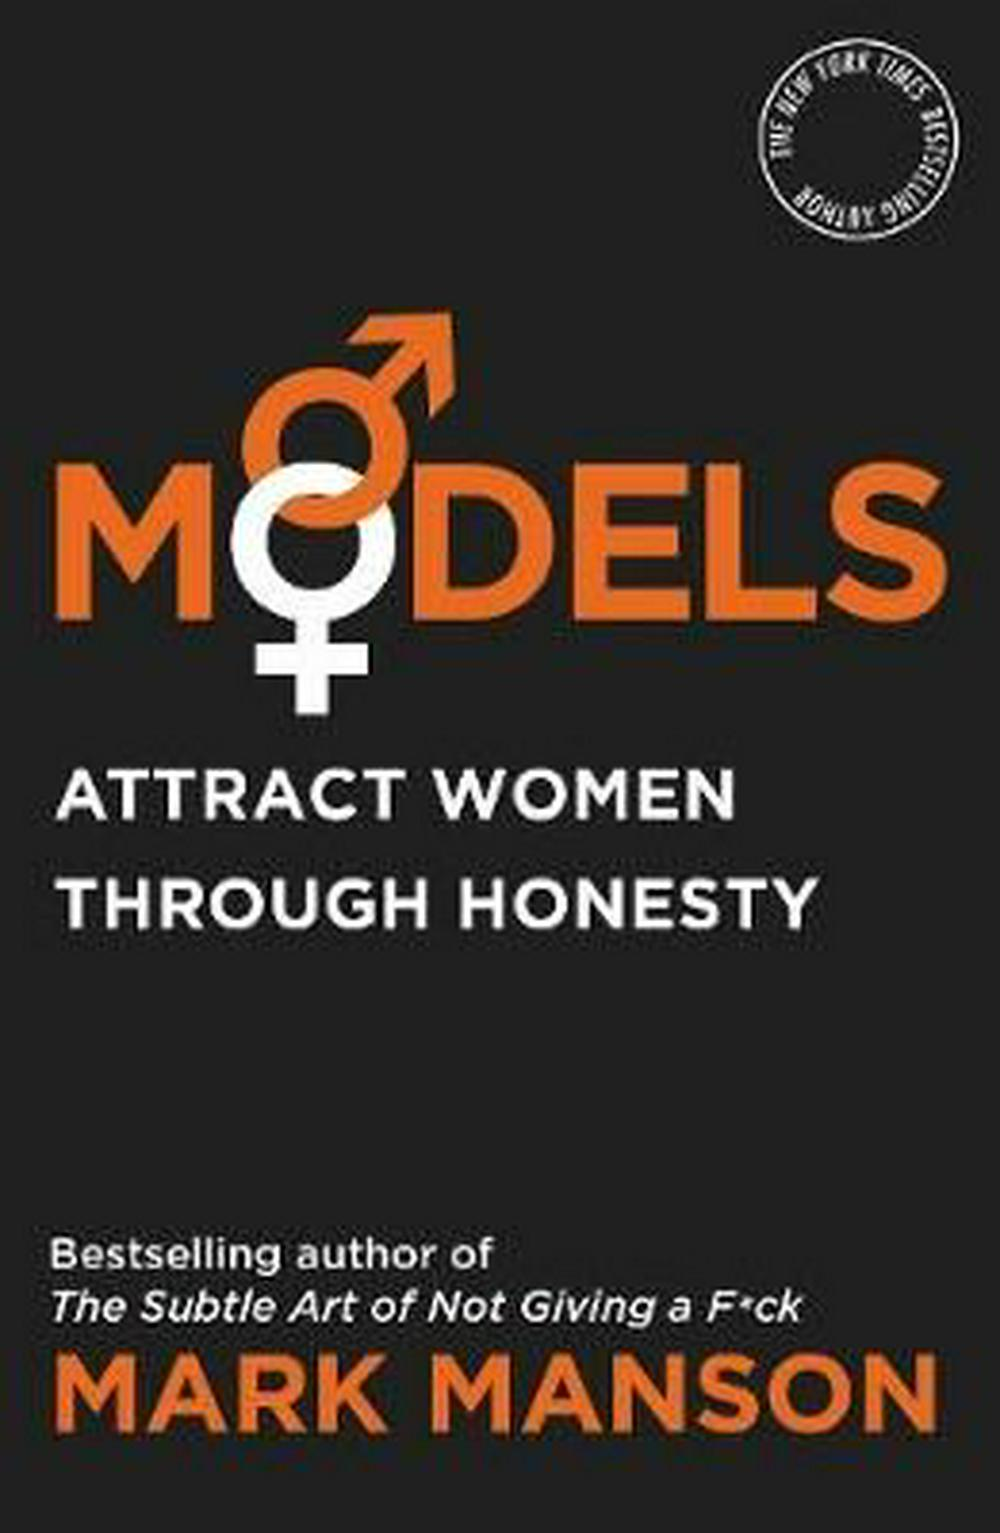 ModelsAttract Women Through Honesty by Mark Manson, ISBN: 9781760558031